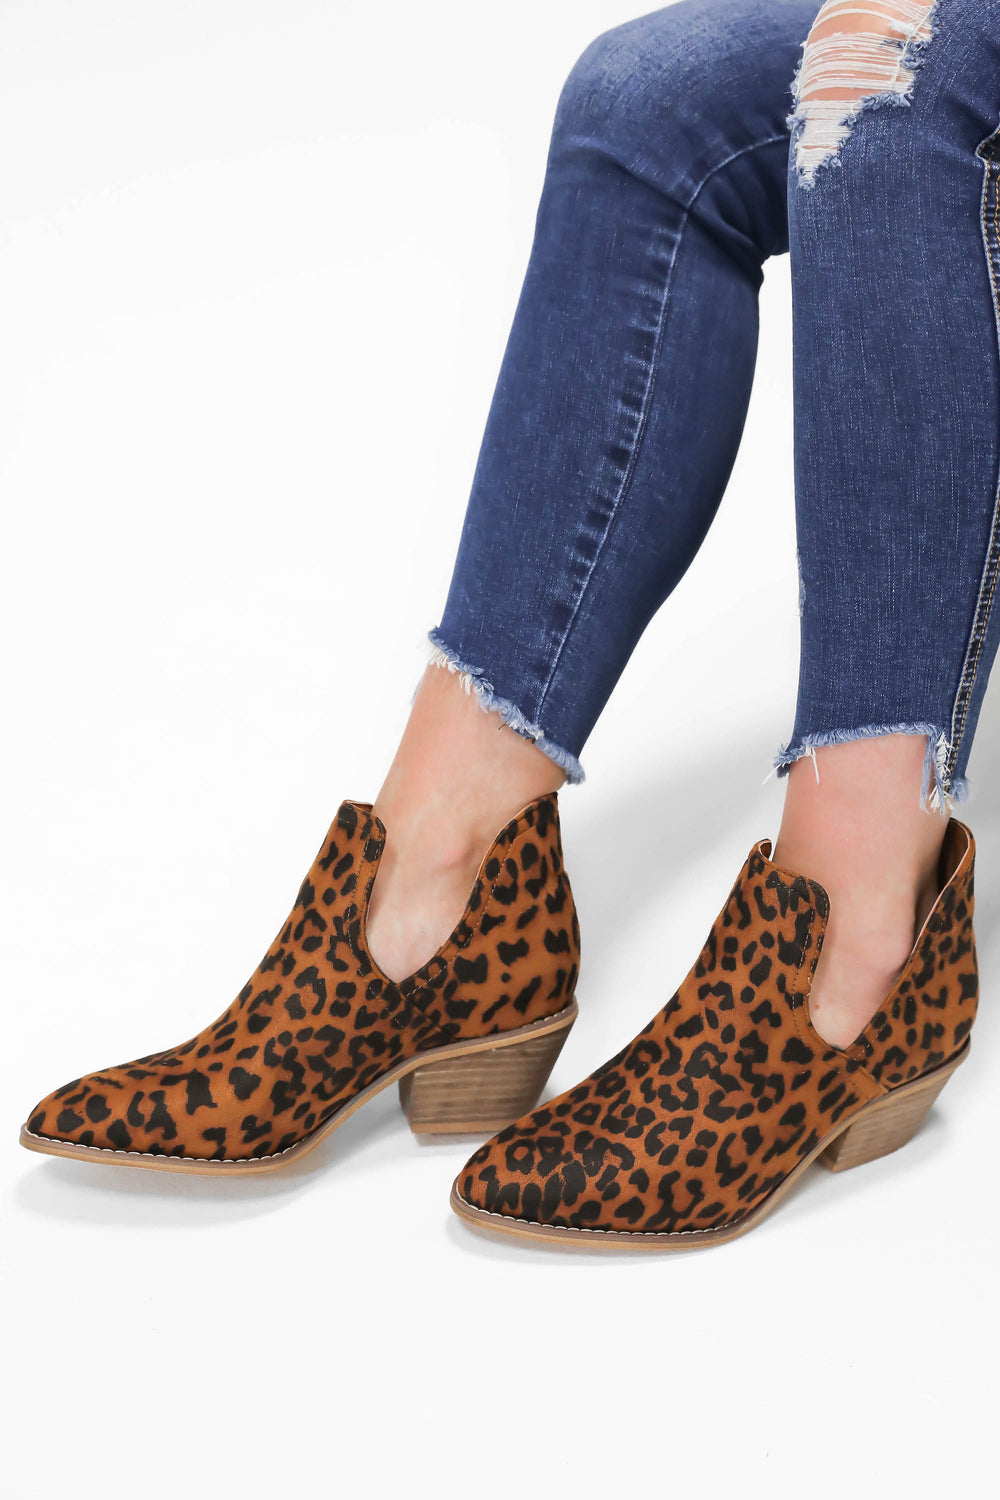 "Born to be Wild Leopard Booties ""Inspired by Hannah Vance"""